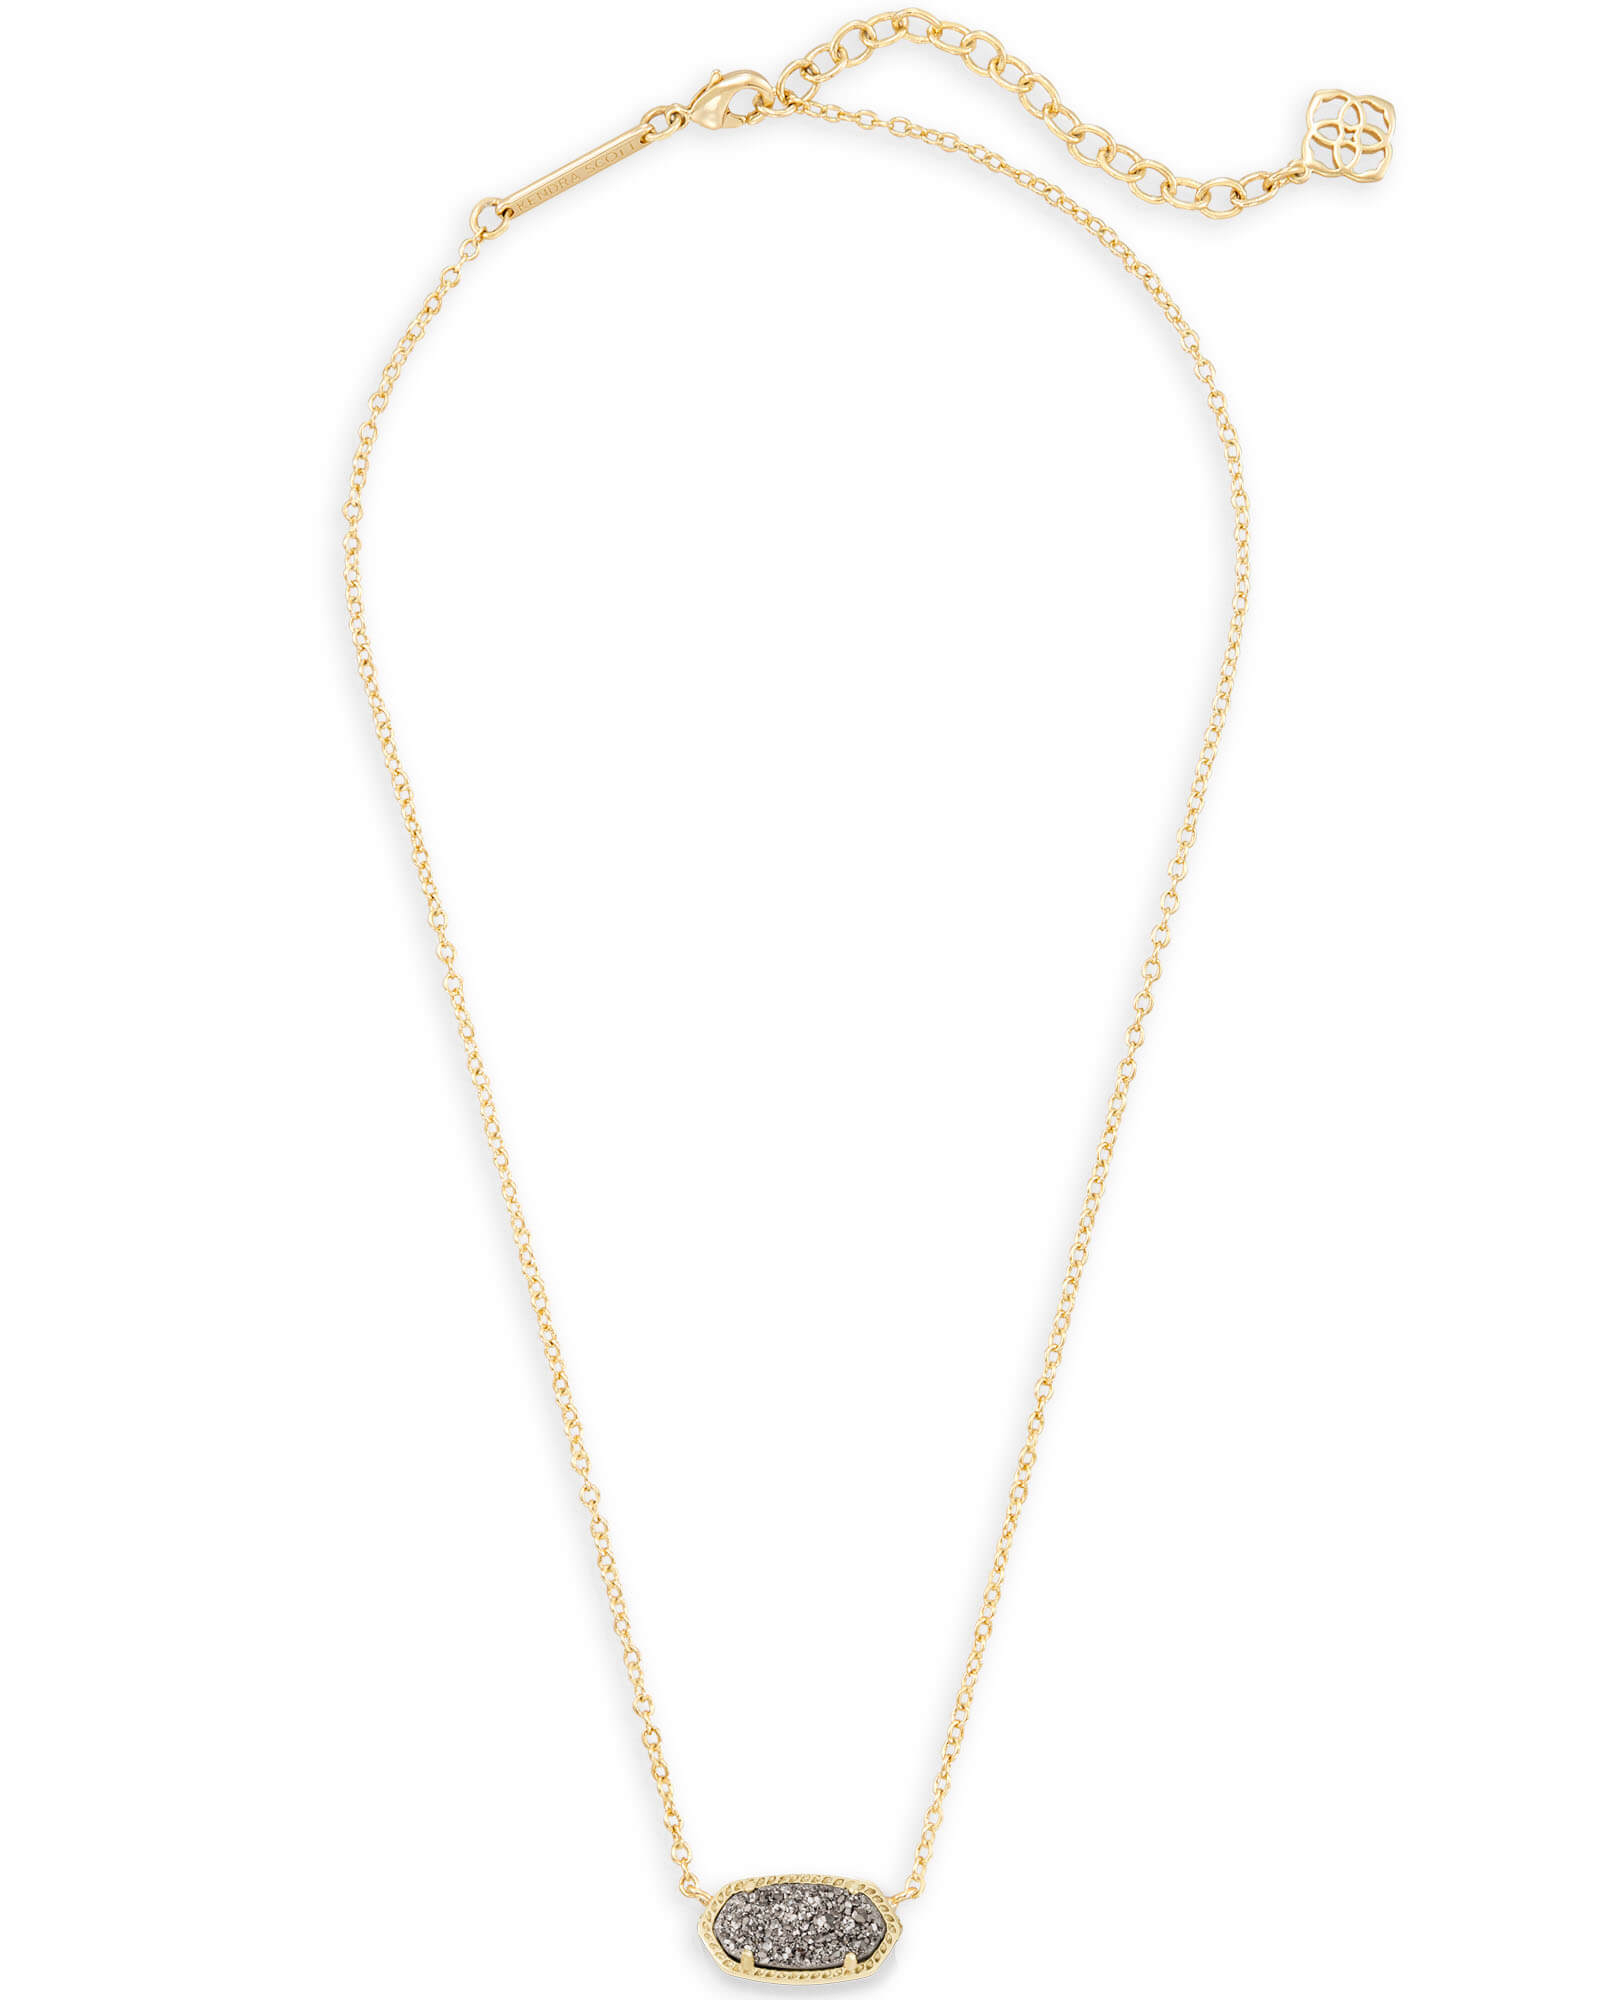 Elisa Pendant Necklace In Gold | Kendra Scott Throughout Most Up To Date Gate Of Love Necklaces (View 11 of 25)